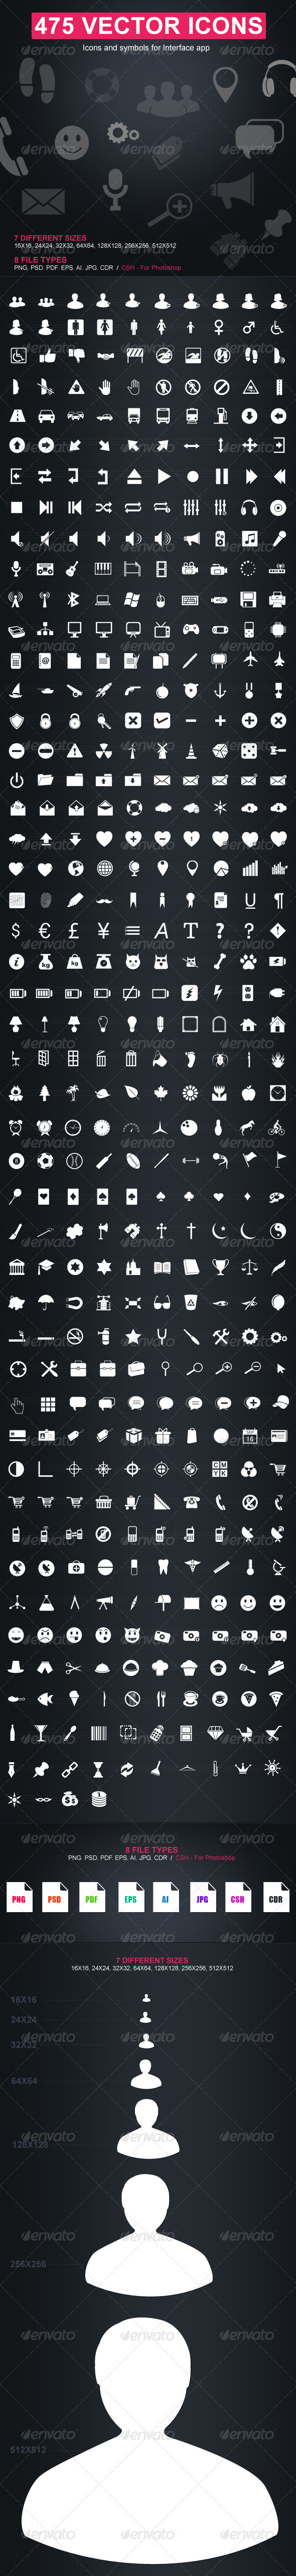 GraphicRiver 475 Vector Icons 1286396